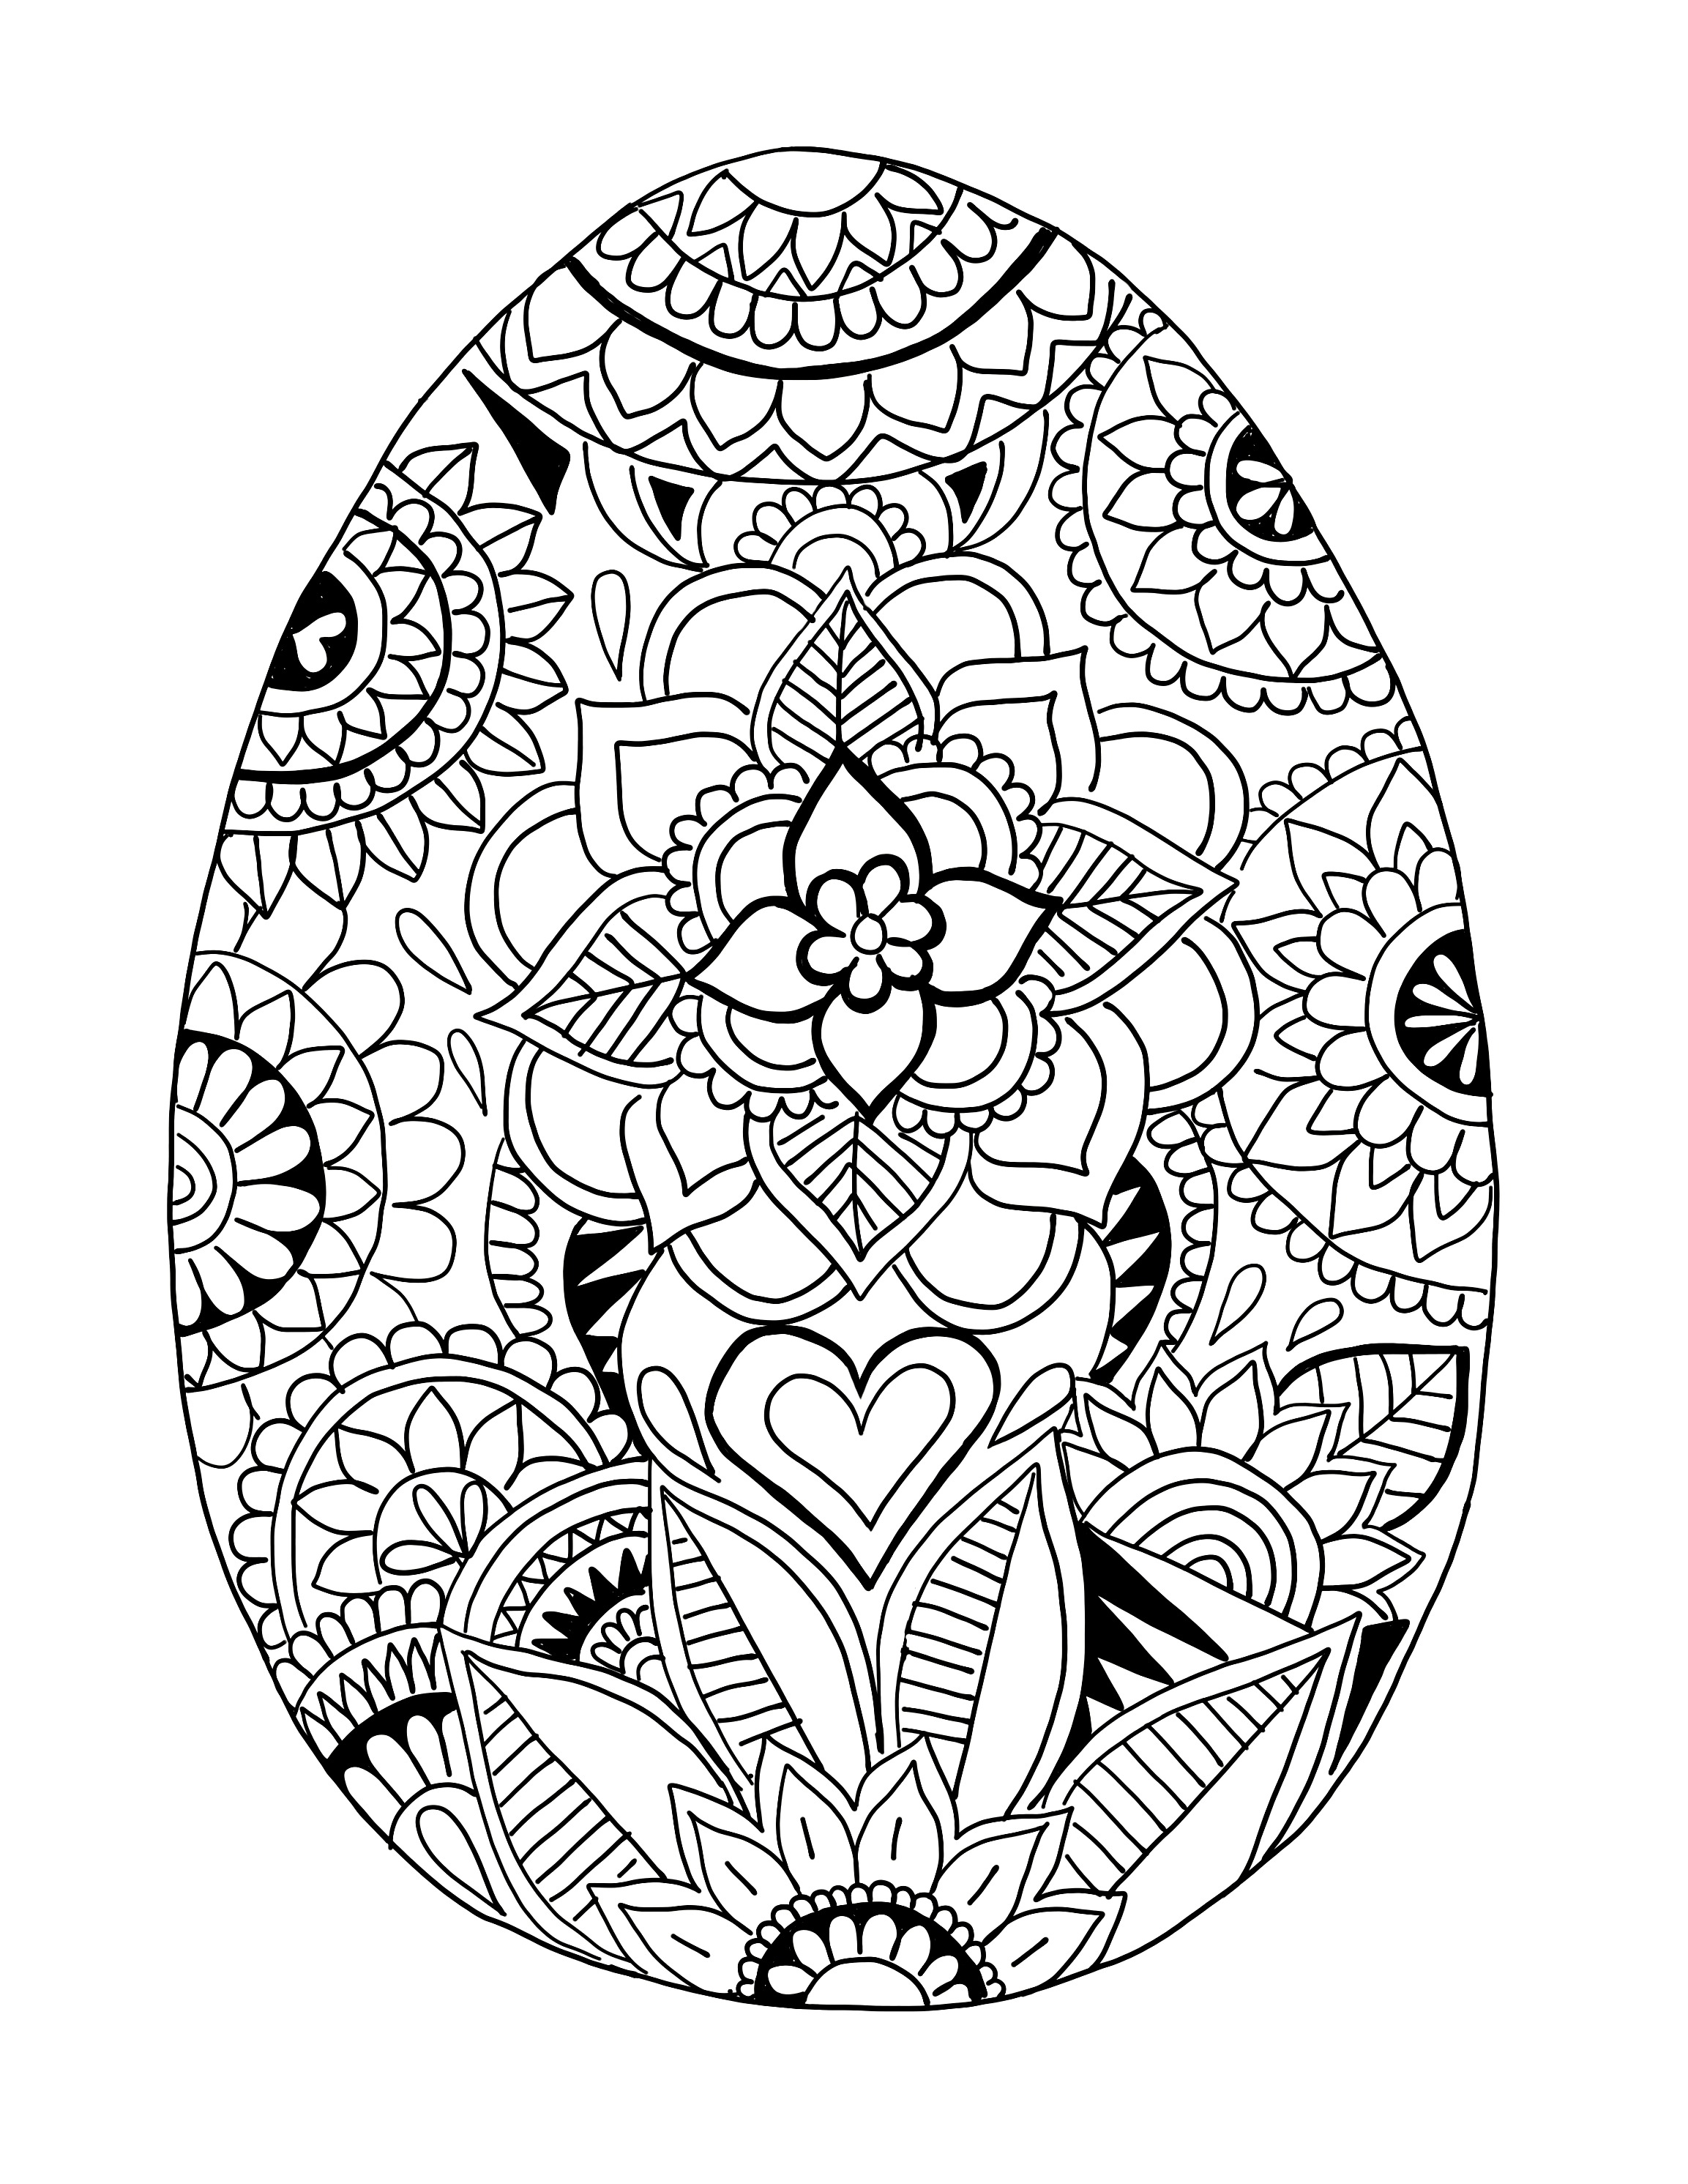 easter egg coloring pictures free printable easter egg coloring pages for kids coloring pictures egg easter